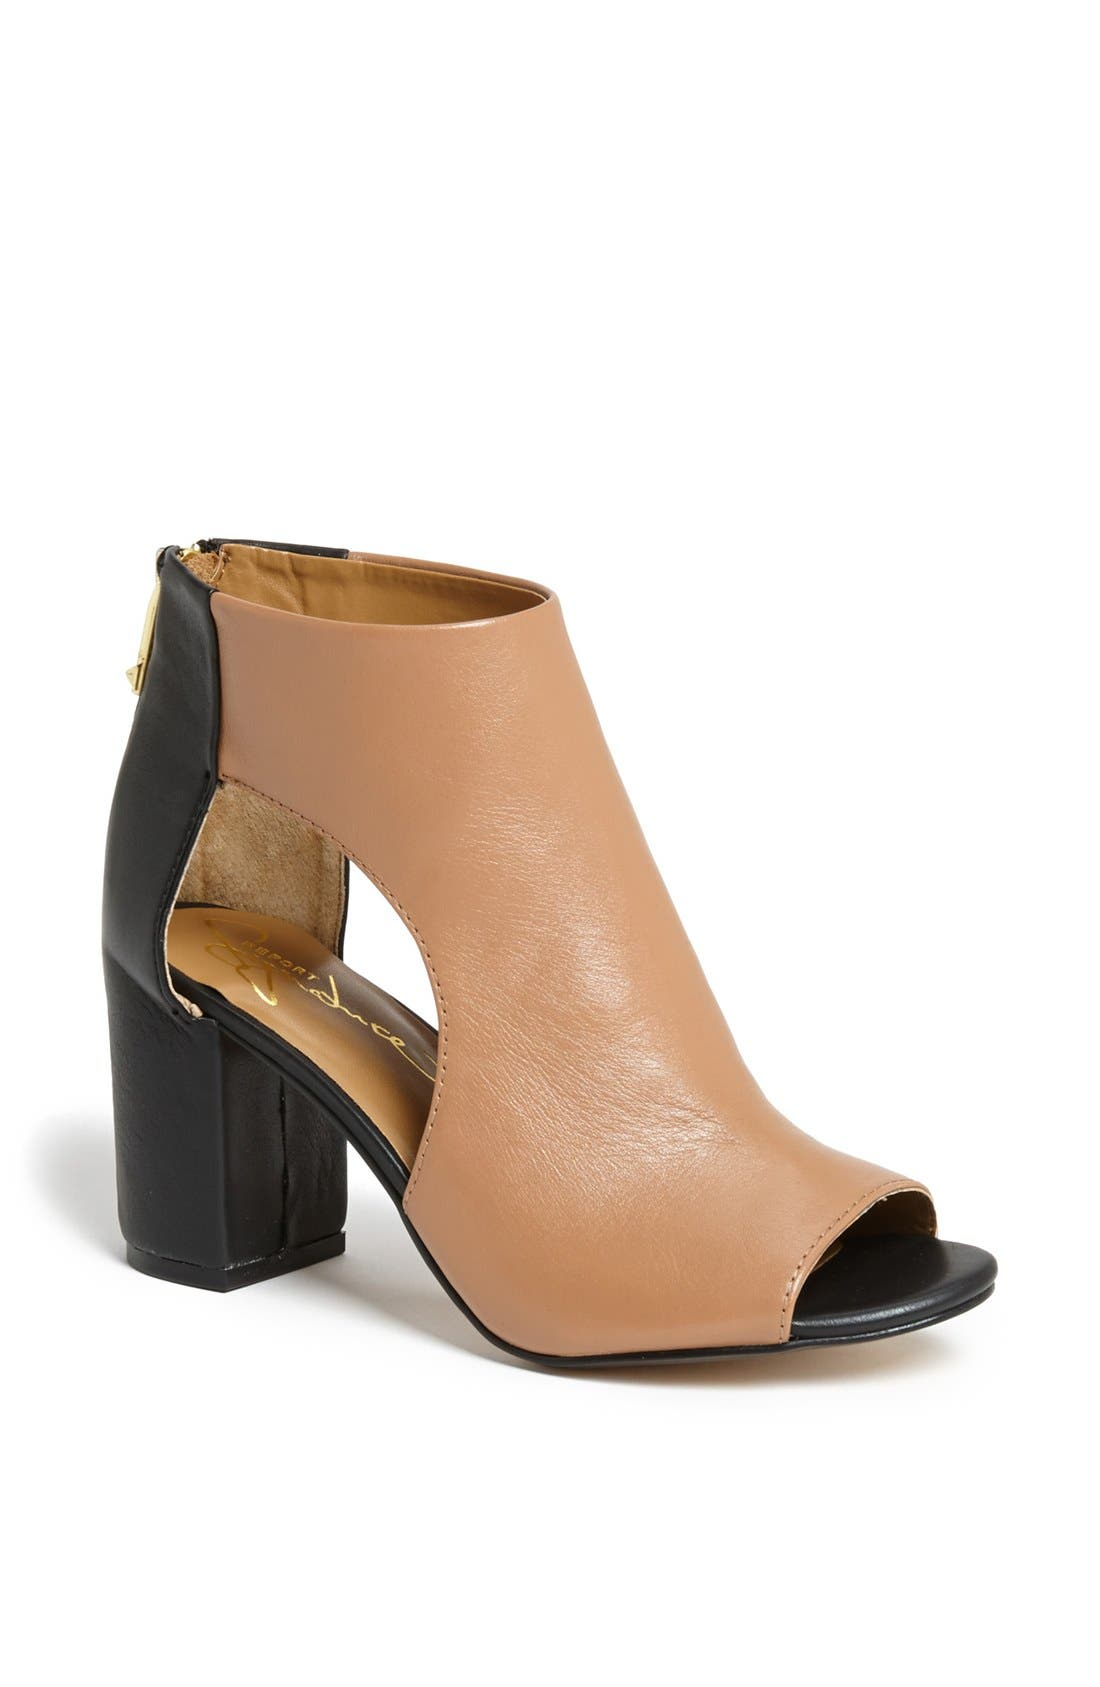 Alternate Image 1 Selected - REPORT Signature 'Bryanna' Cutout Bootie